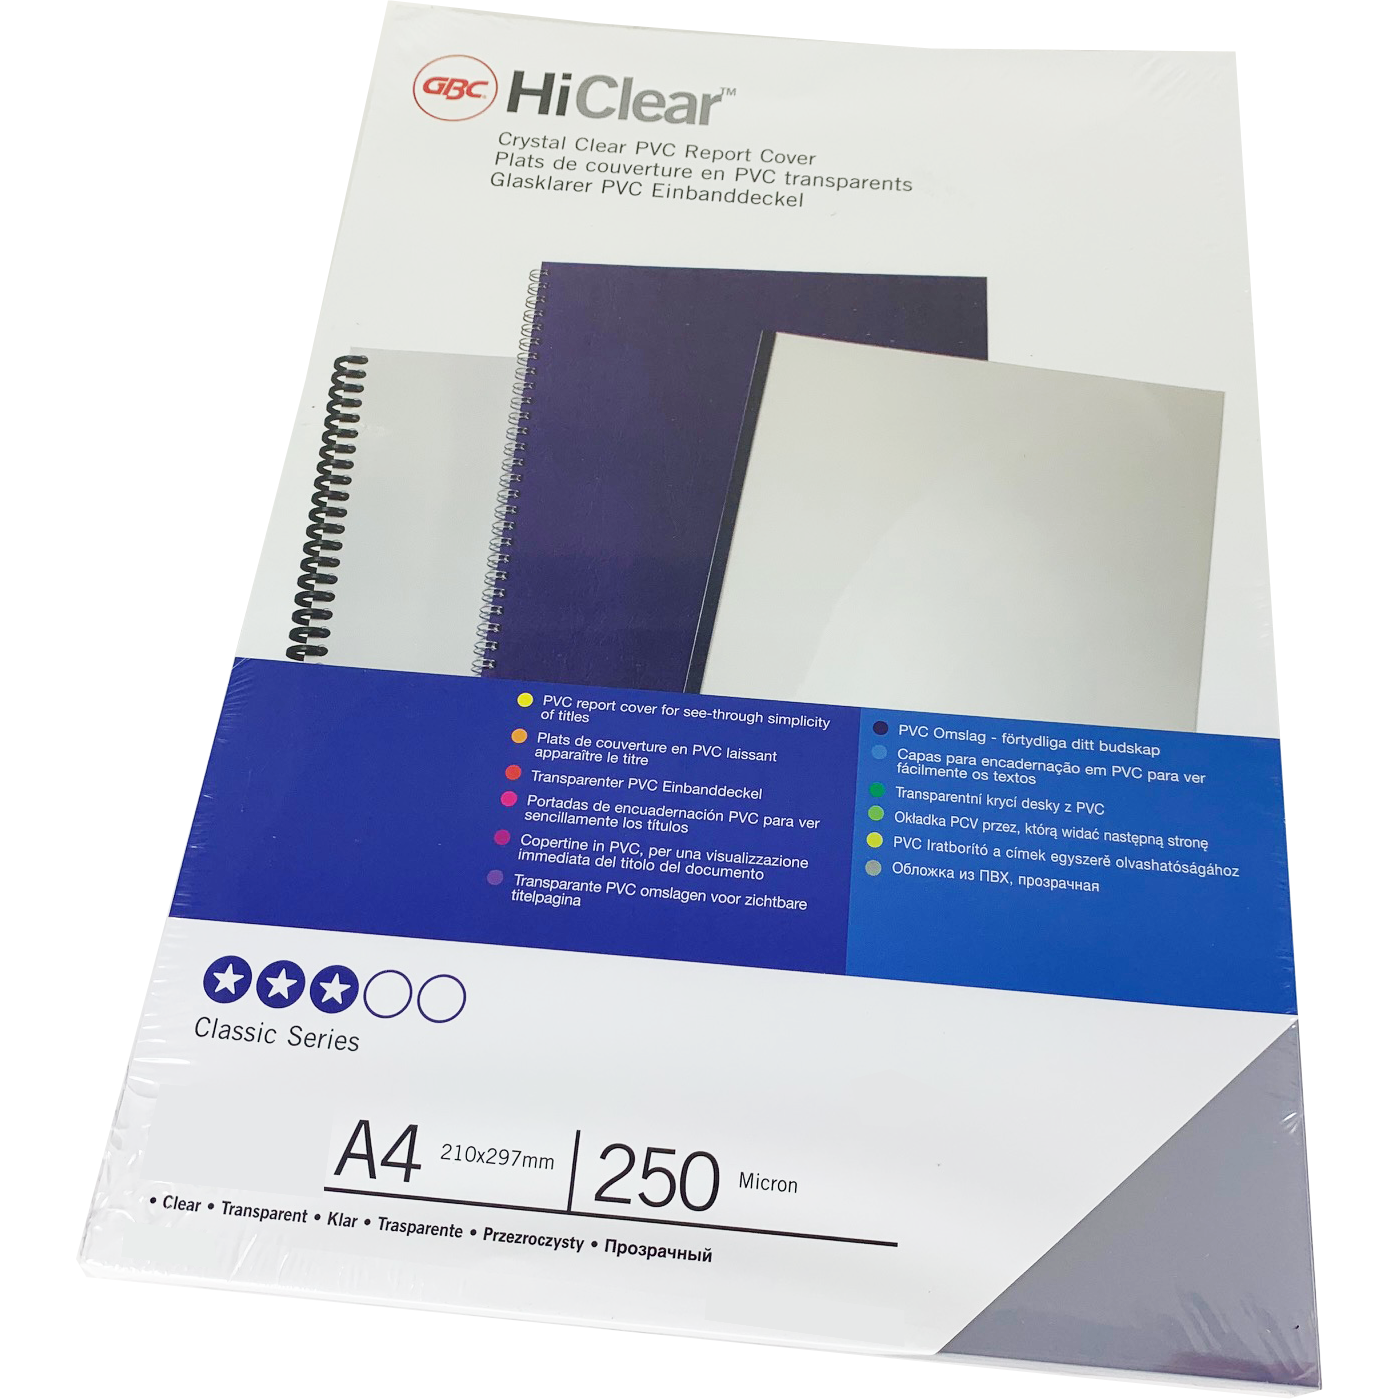 Branded HiClear PVC 250Micron Clear PPE Sheets Bulk Pack (1000)